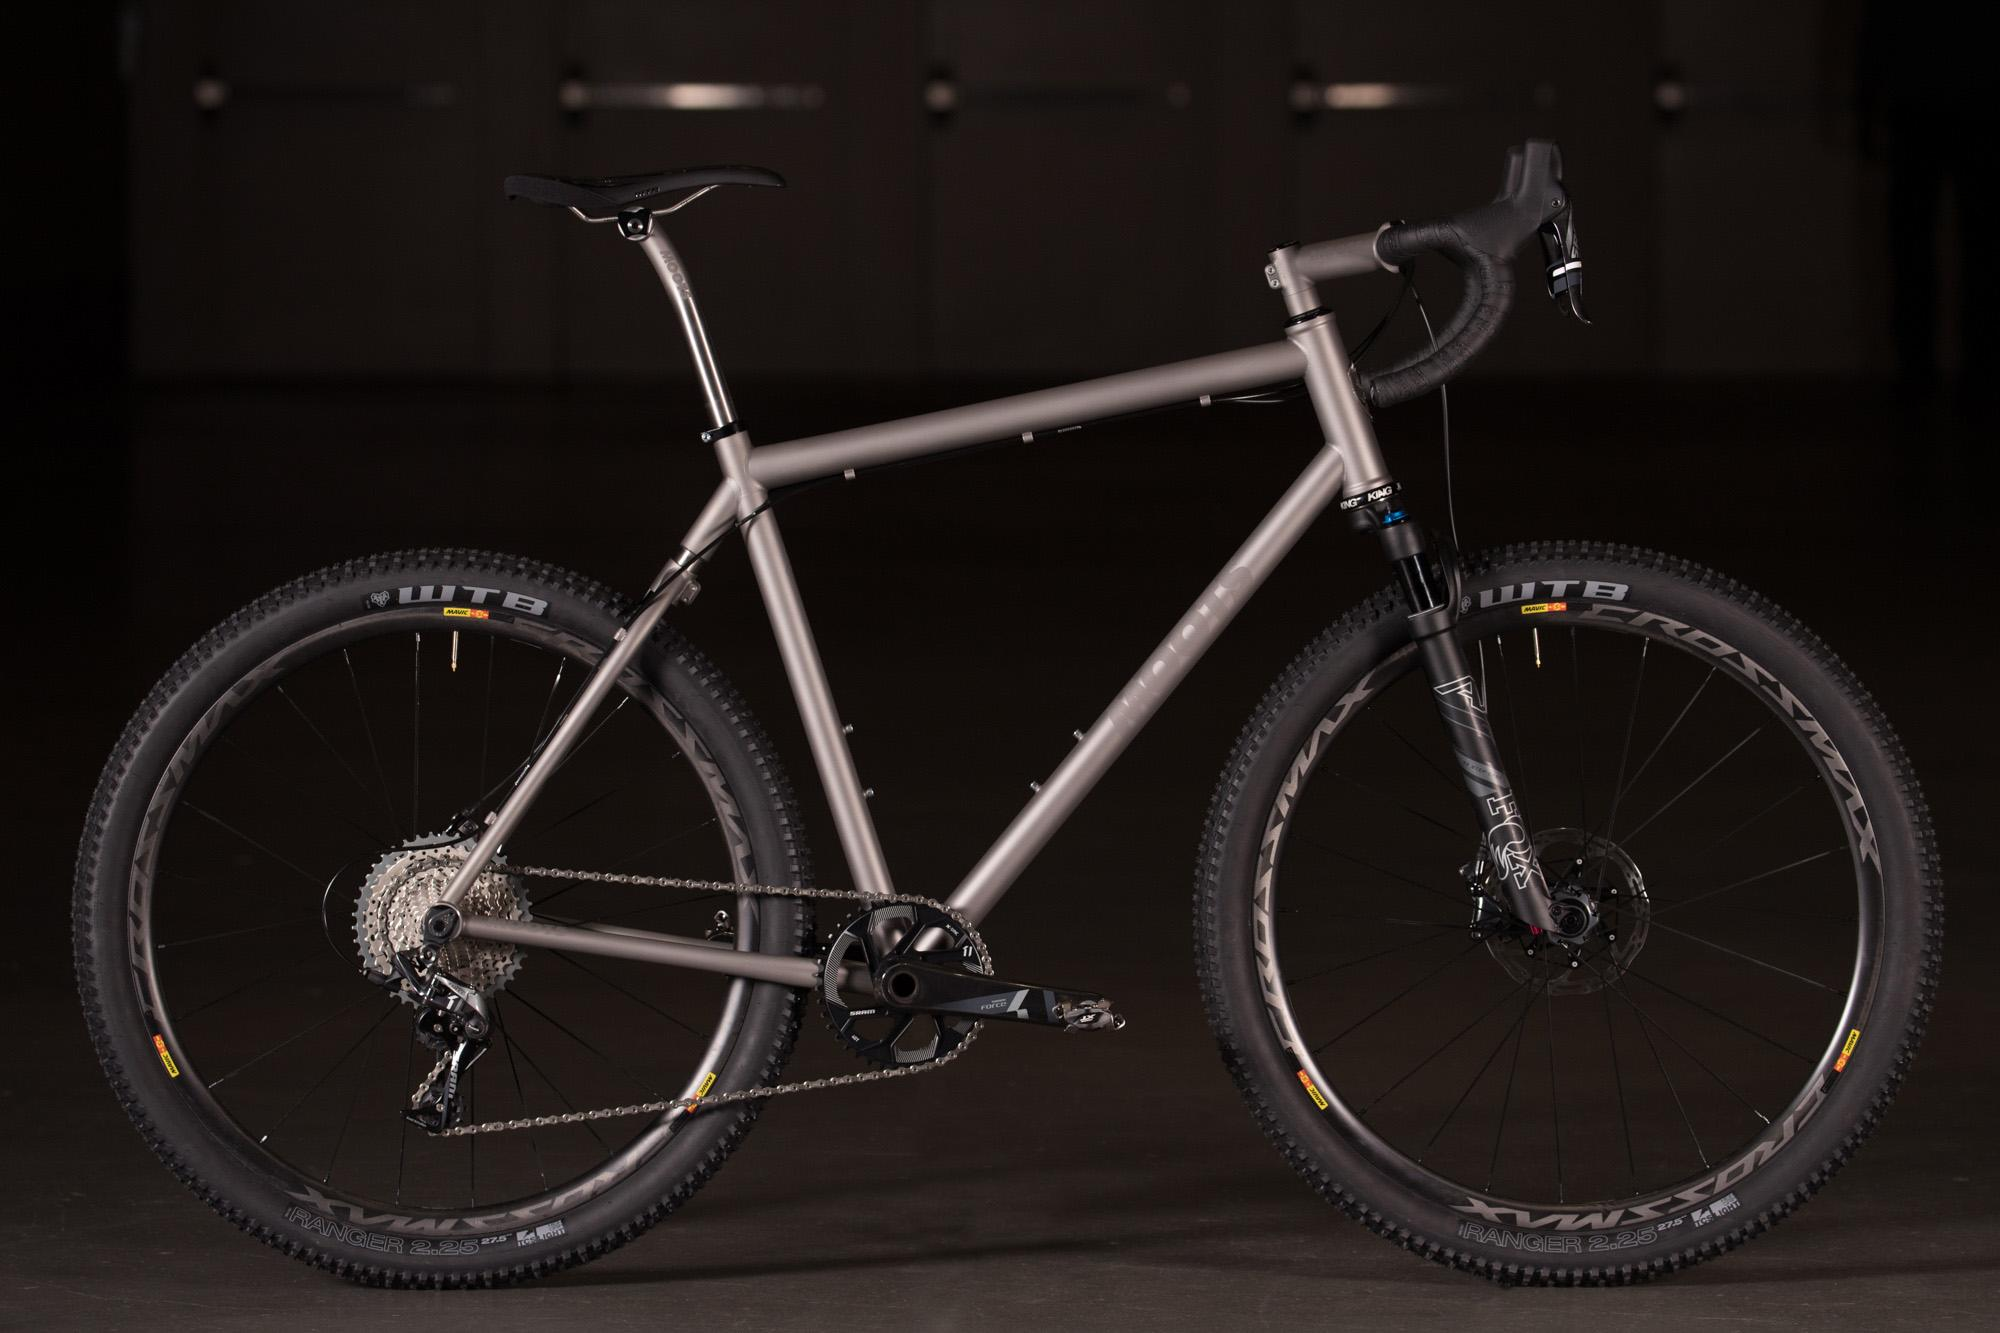 2018 NAHBS: Moots Dirt Drop Soft Tail Prototype